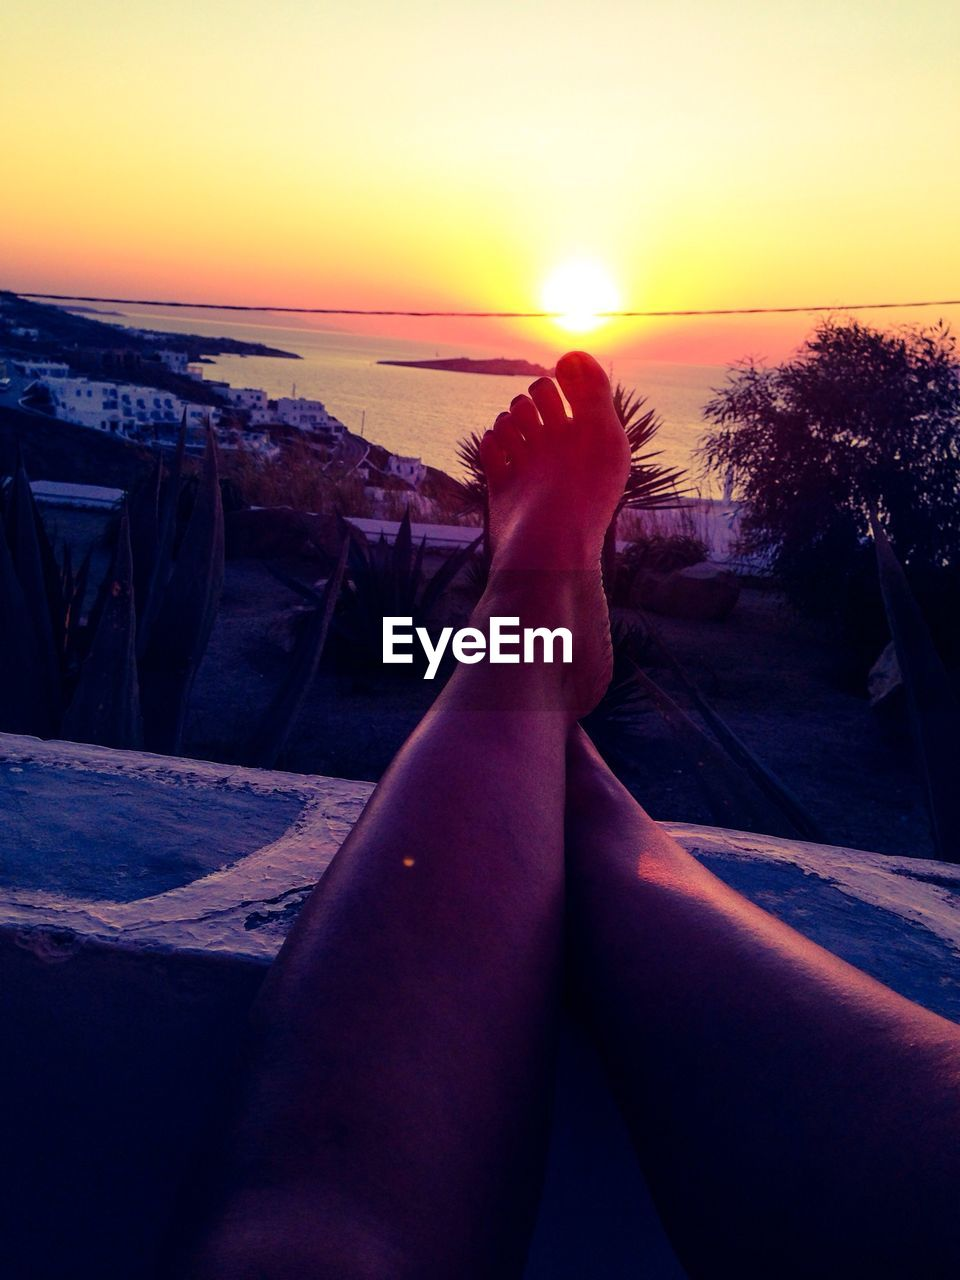 sunset, human leg, barefoot, low section, human foot, personal perspective, human body part, real people, sea, one person, sky, leisure activity, water, outdoors, scenics, sunlight, beauty in nature, women, vacations, nature, relaxation, lifestyles, horizon over water, clear sky, close-up, day, people